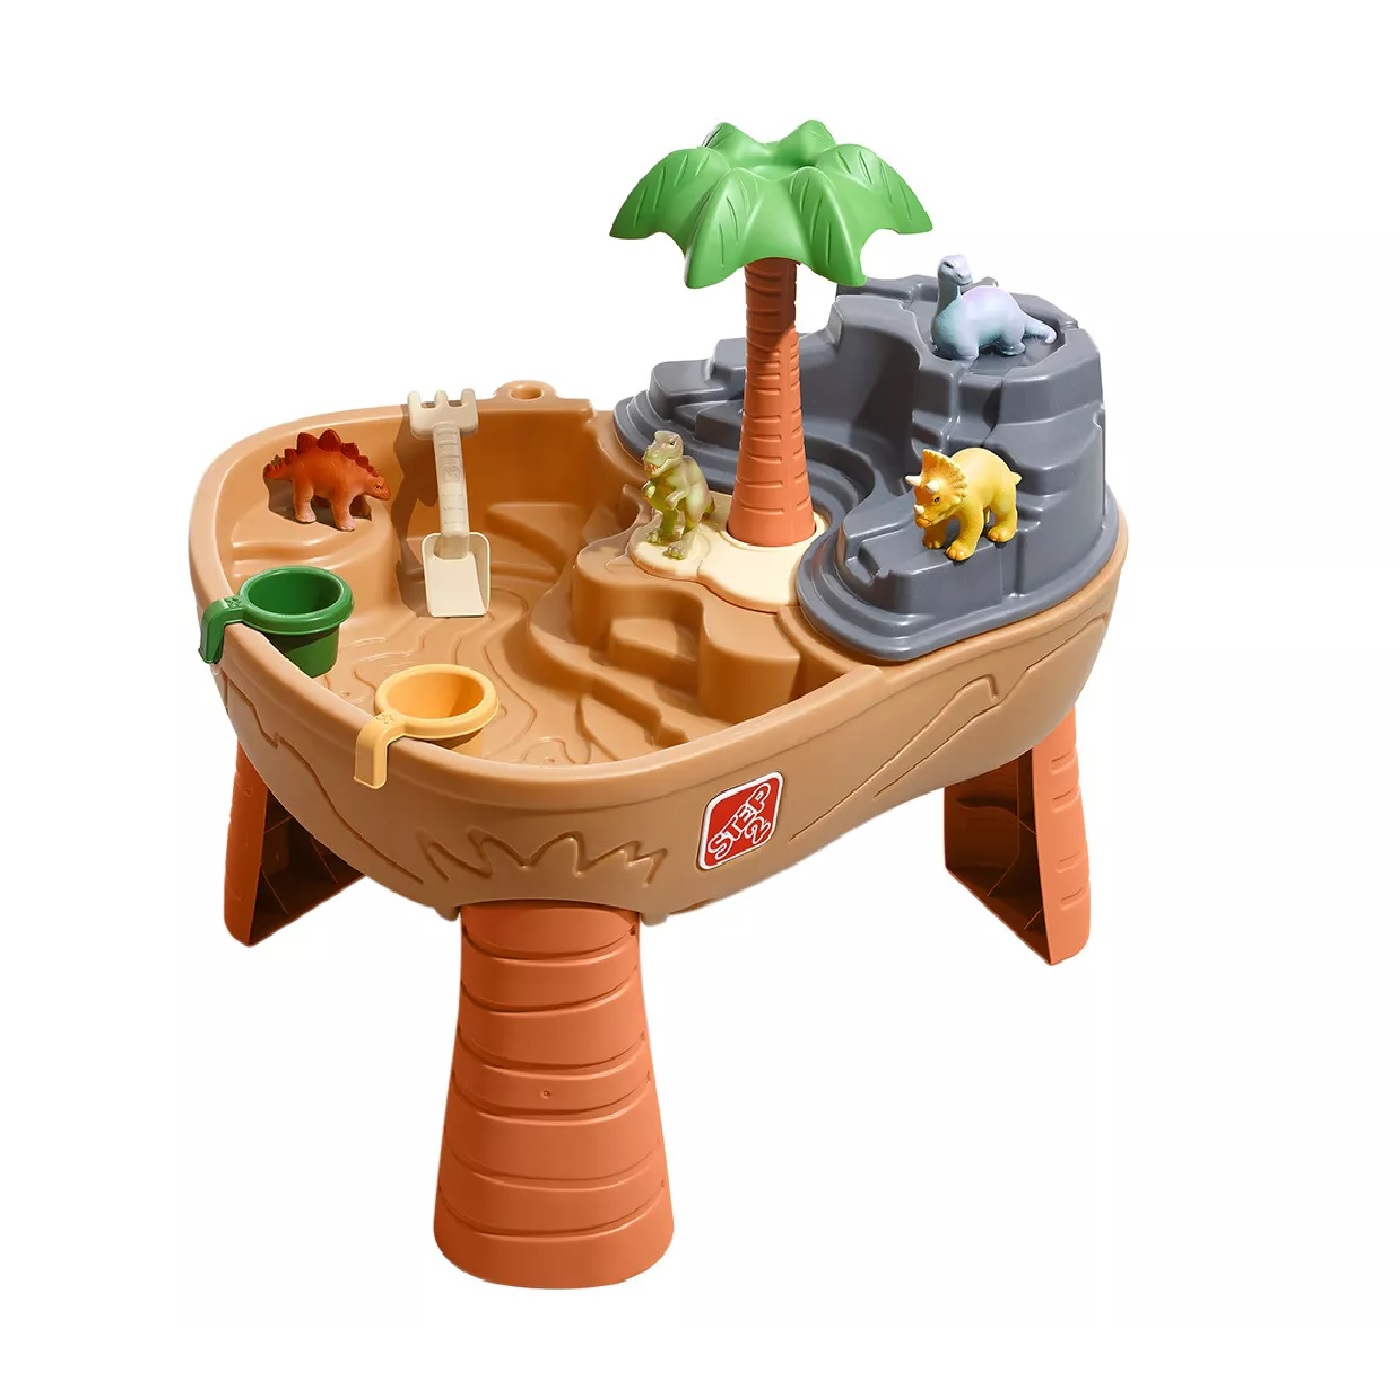 sand & water tables image